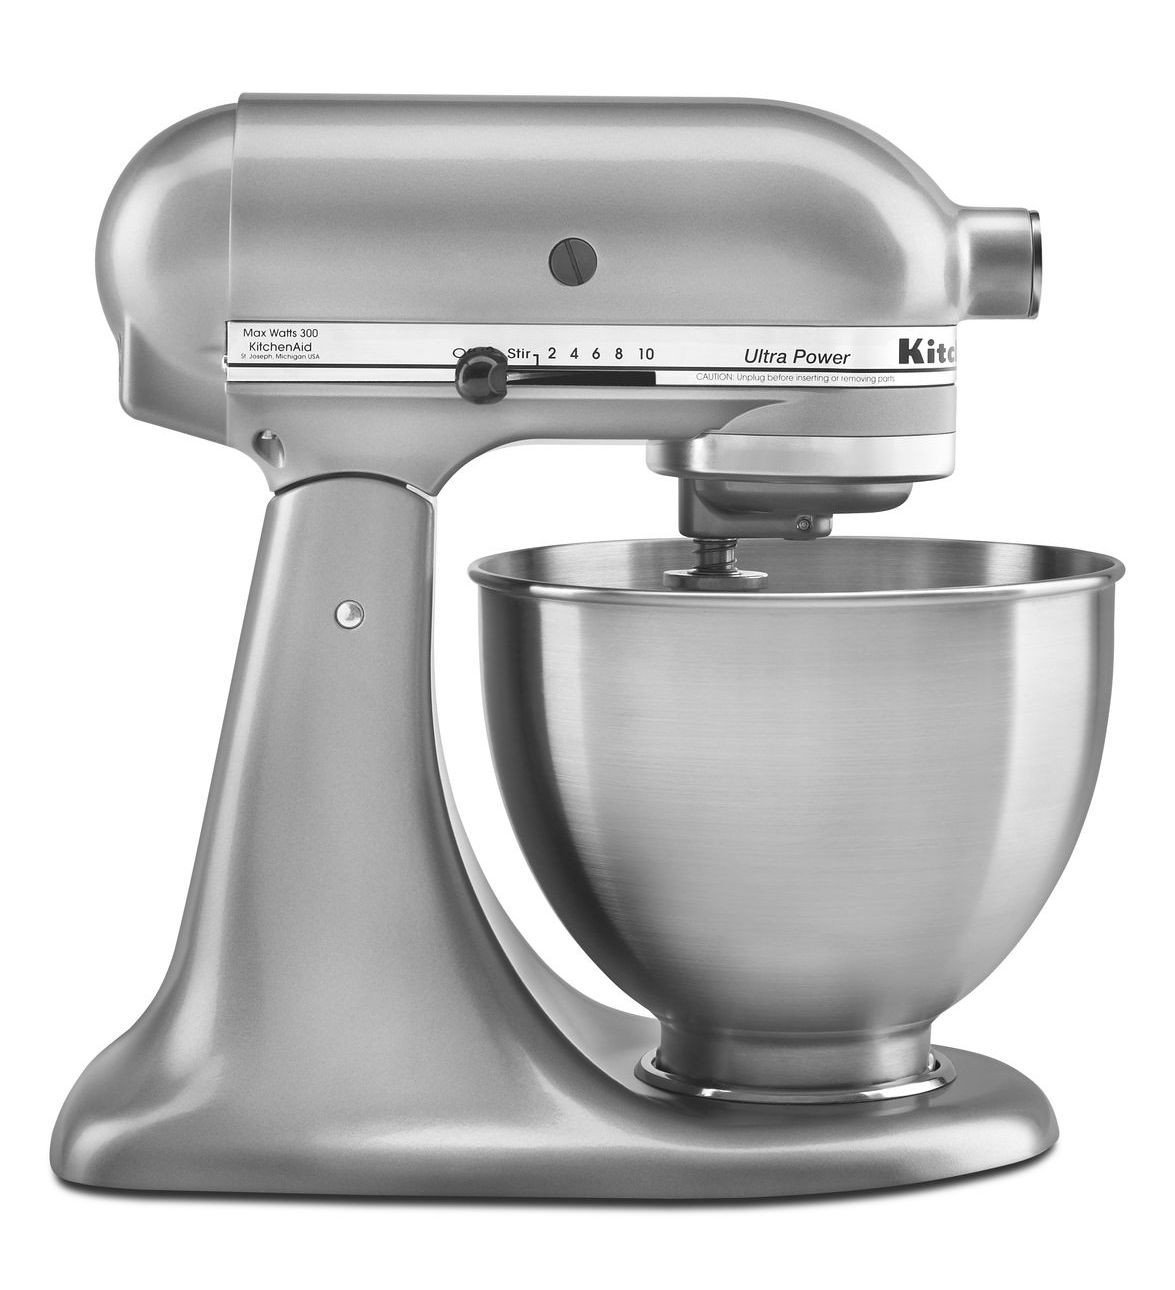 New Made USA Kitchenaid Ultra Power Ksm95cu 10speed Stand Mixer 4.5-quart Silver One Day Shipping Good Gift Fast Shipping by KitchenAid